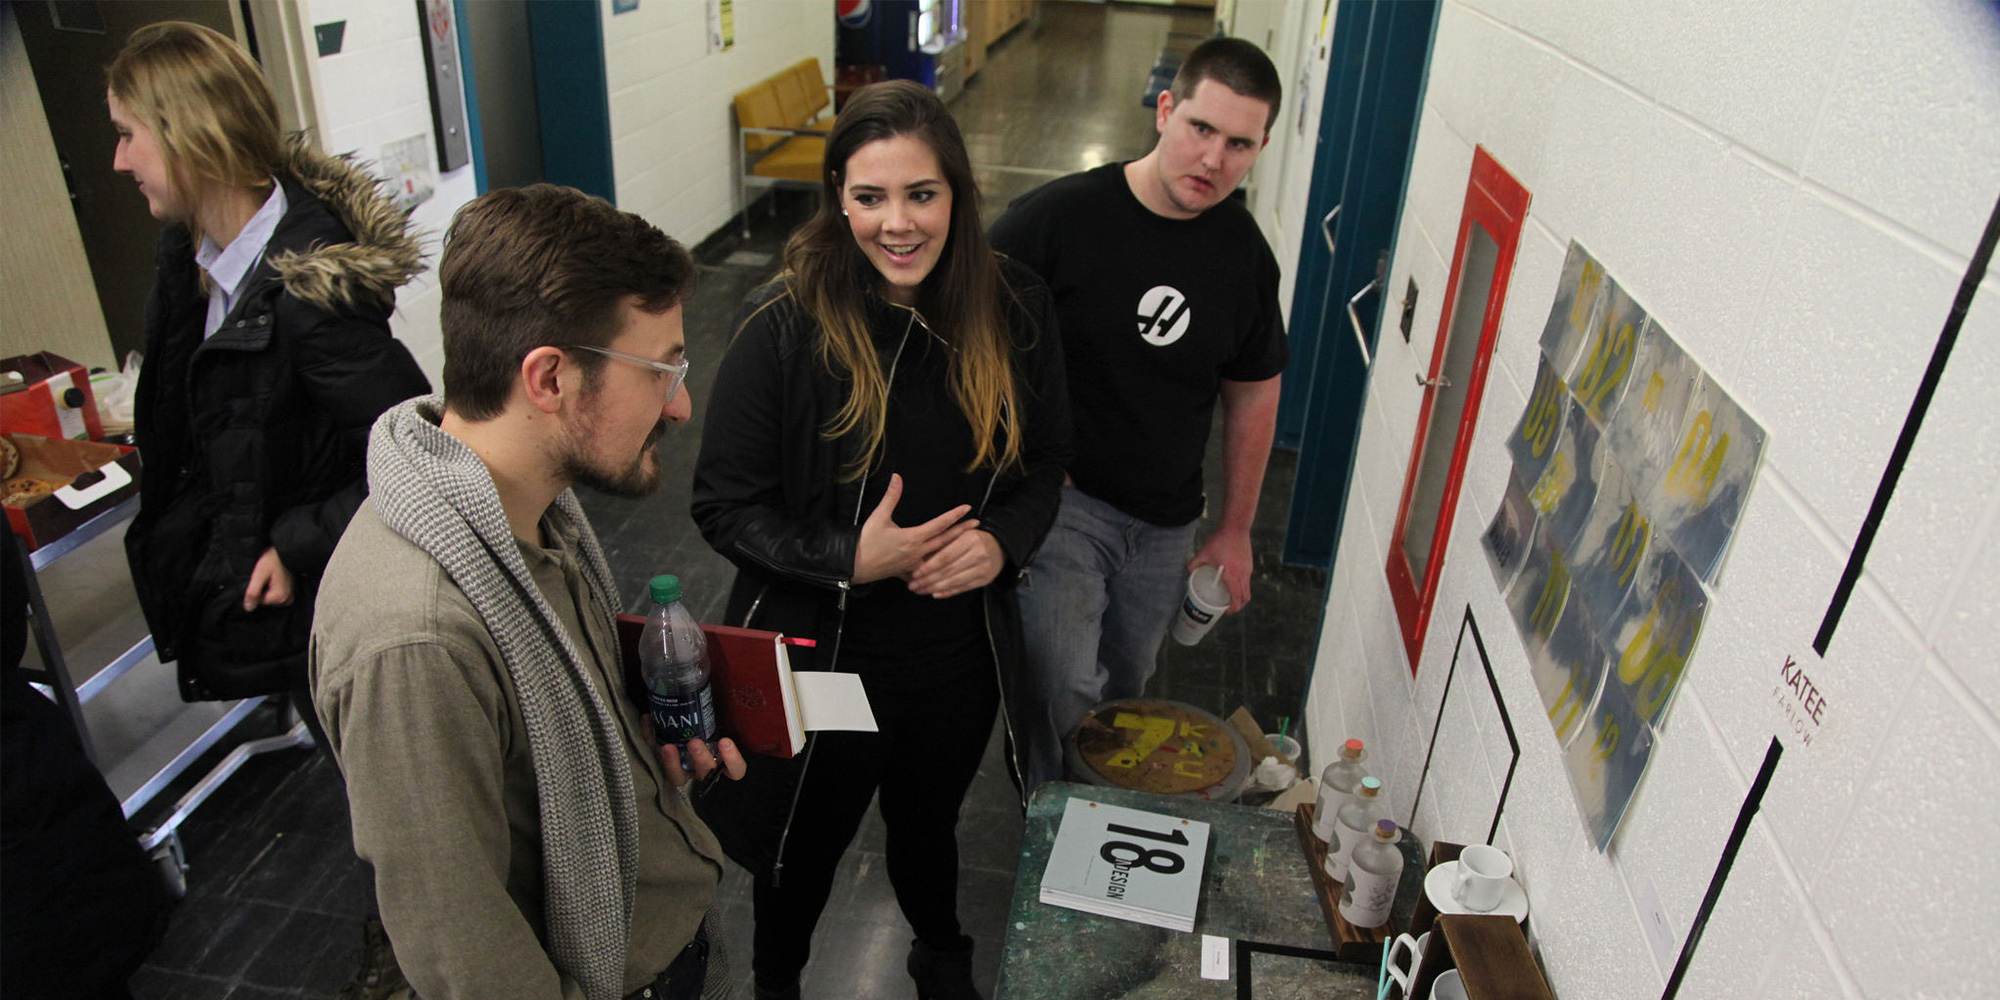 AAHD's Graphic Design Program Holds Day of Design